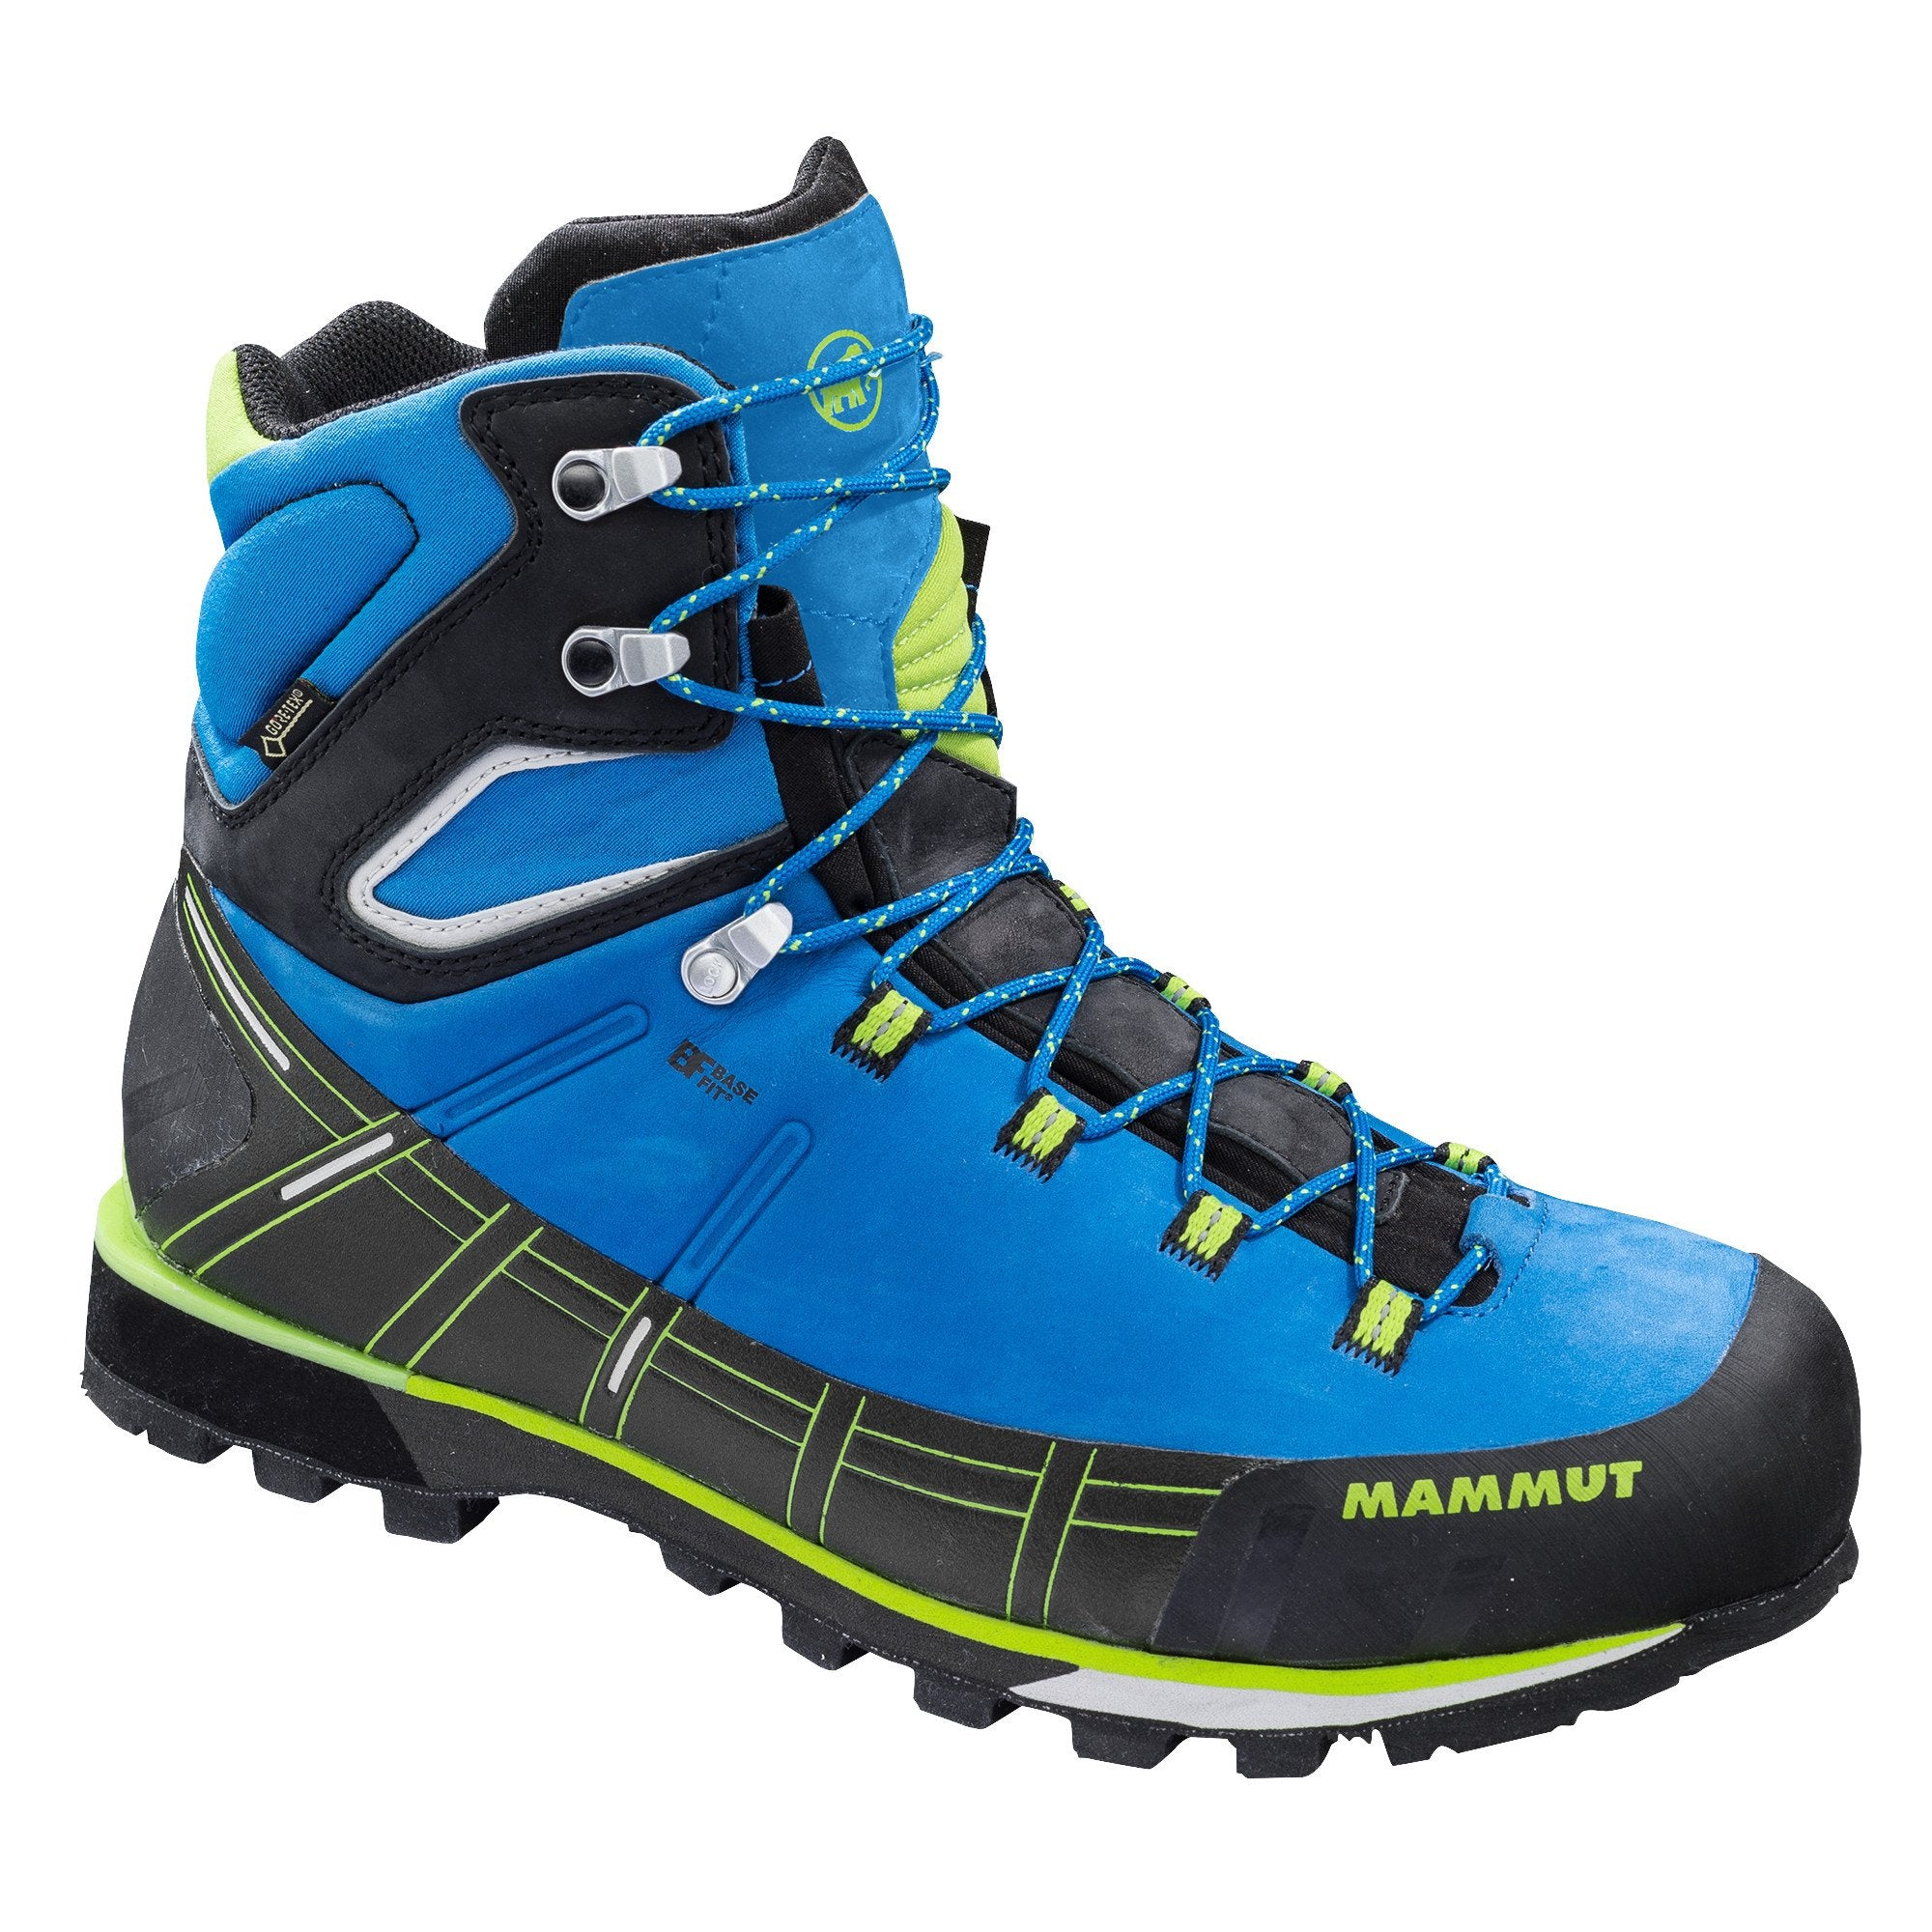 Mammut Kento High GTX mountaineering boot, outer/side view shown in black and blue colours